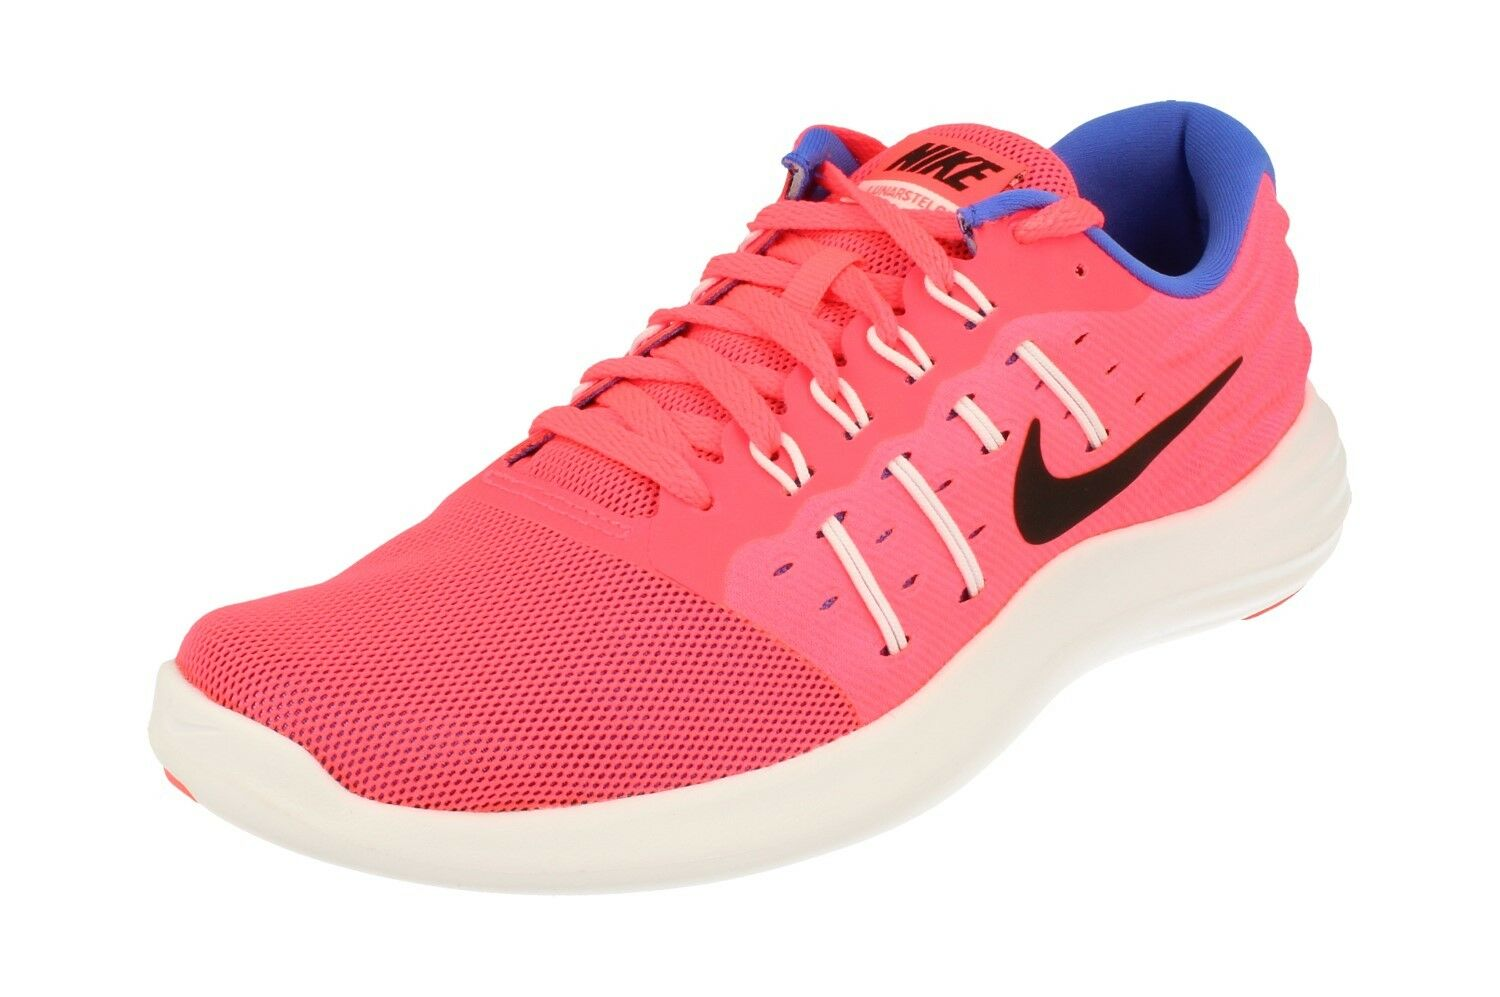 Nike Femme Lunarstelos fonctionnement Trainers 844736 603 Sneakers chaussures